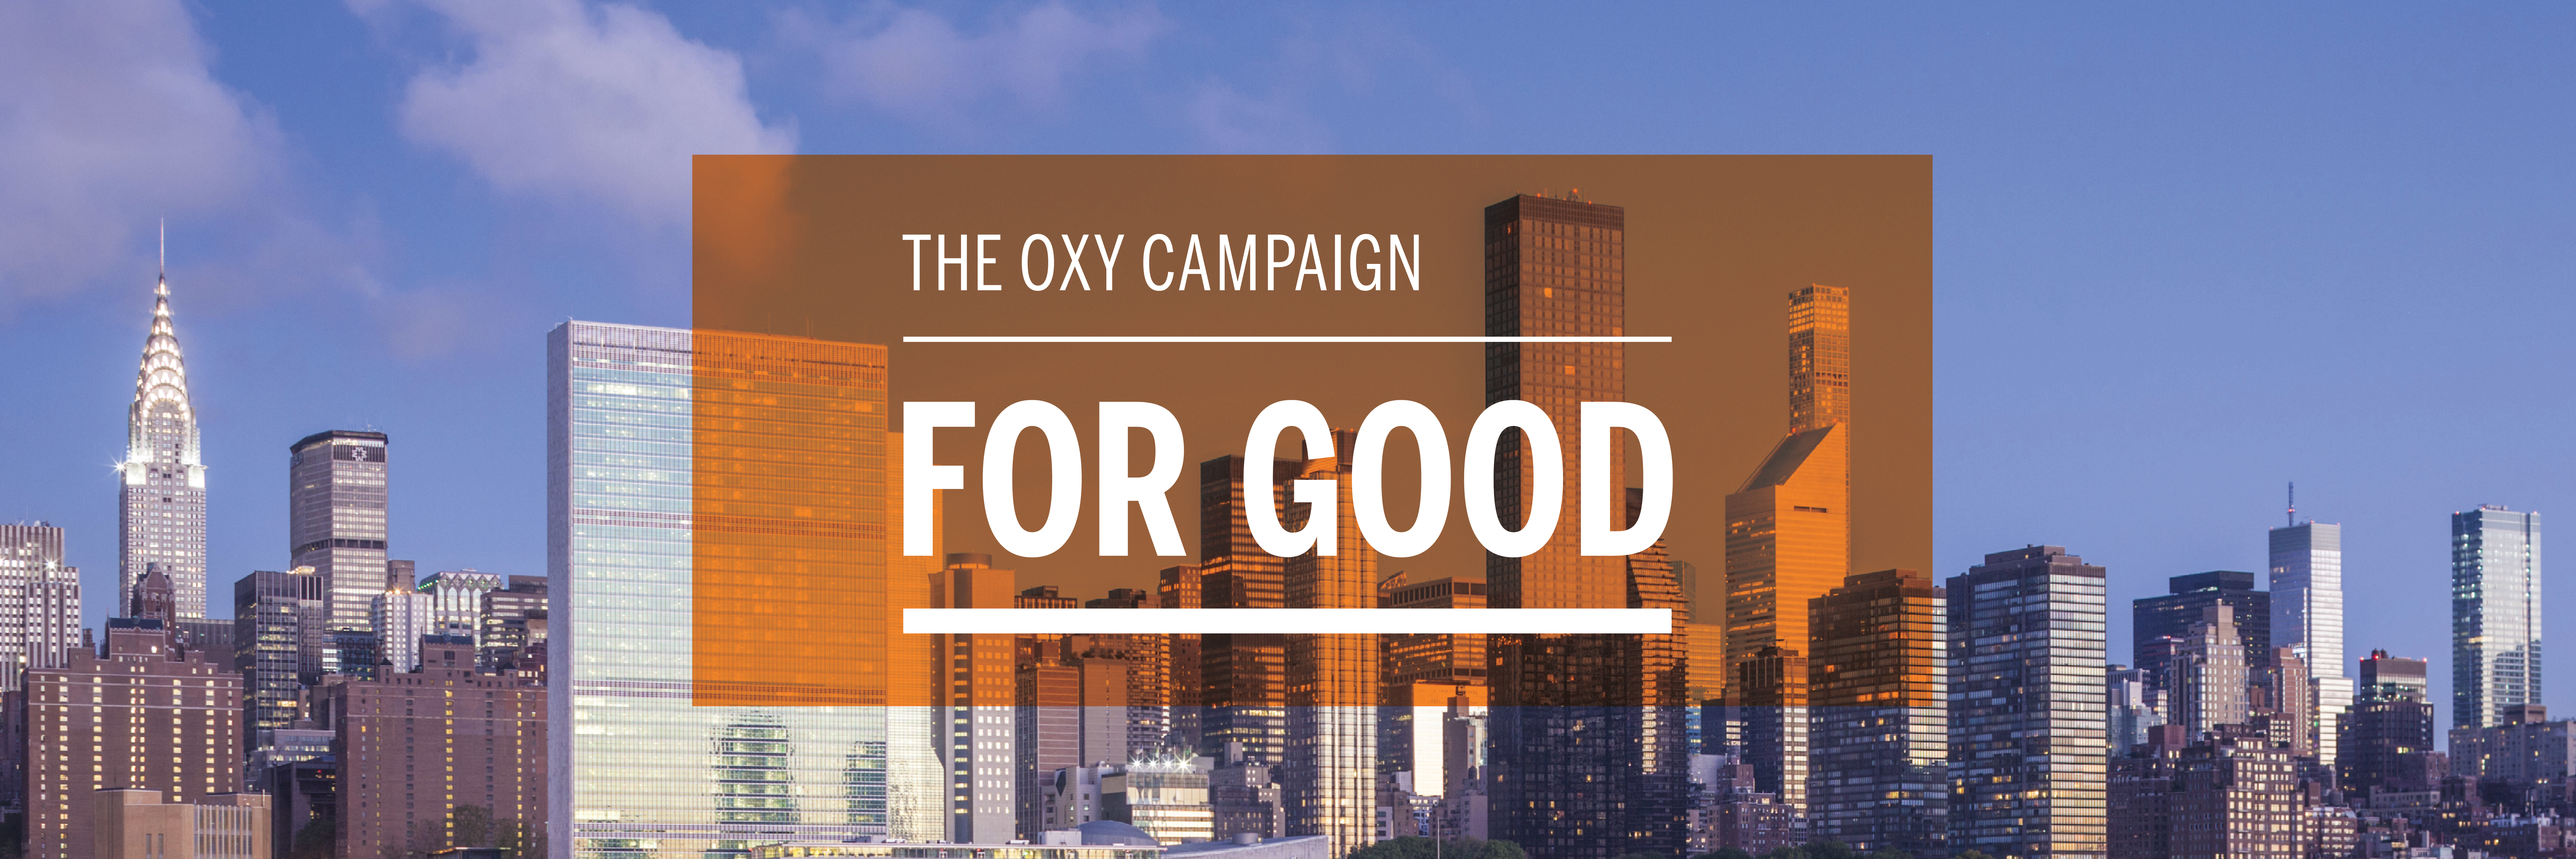 Oxy in New York Event - October 22, 2019